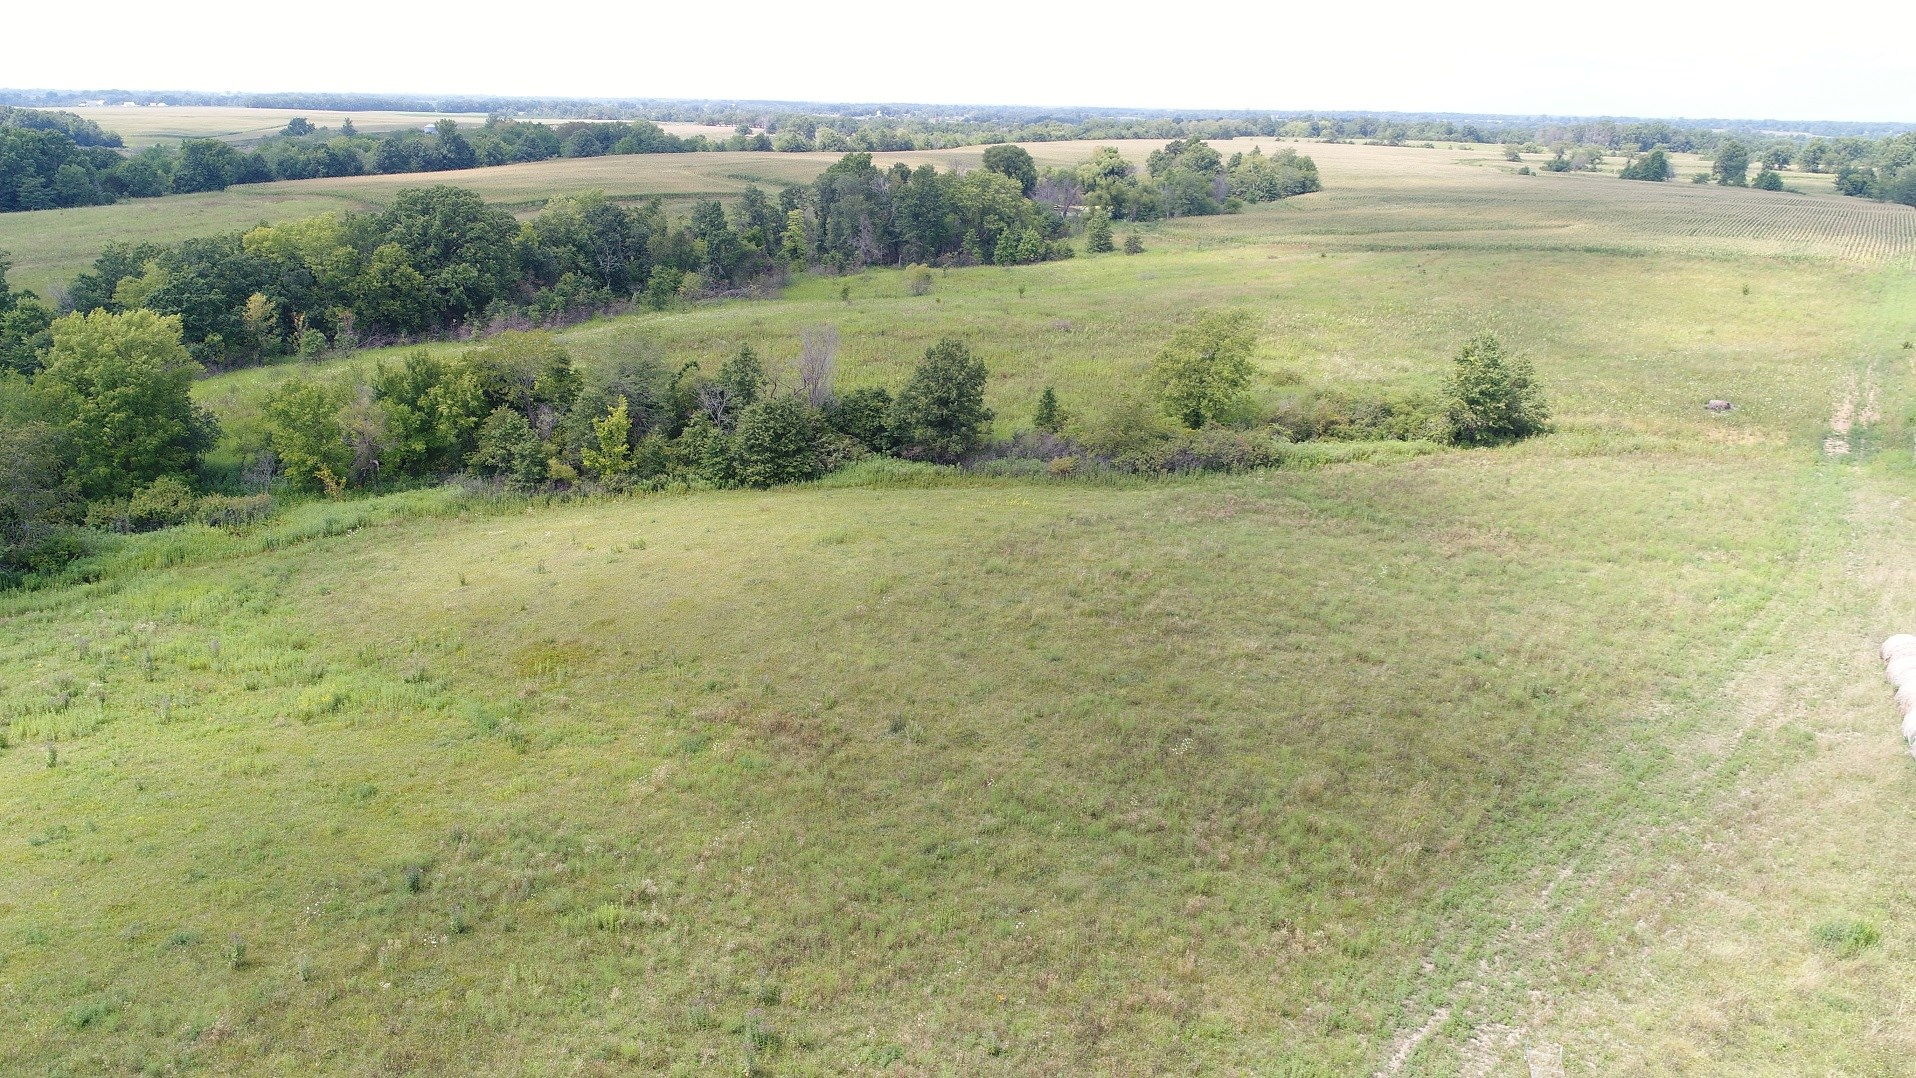 MO RECREATIONAL LAND FOR SALE, MISSOURI COMBO FARM FOR SALE